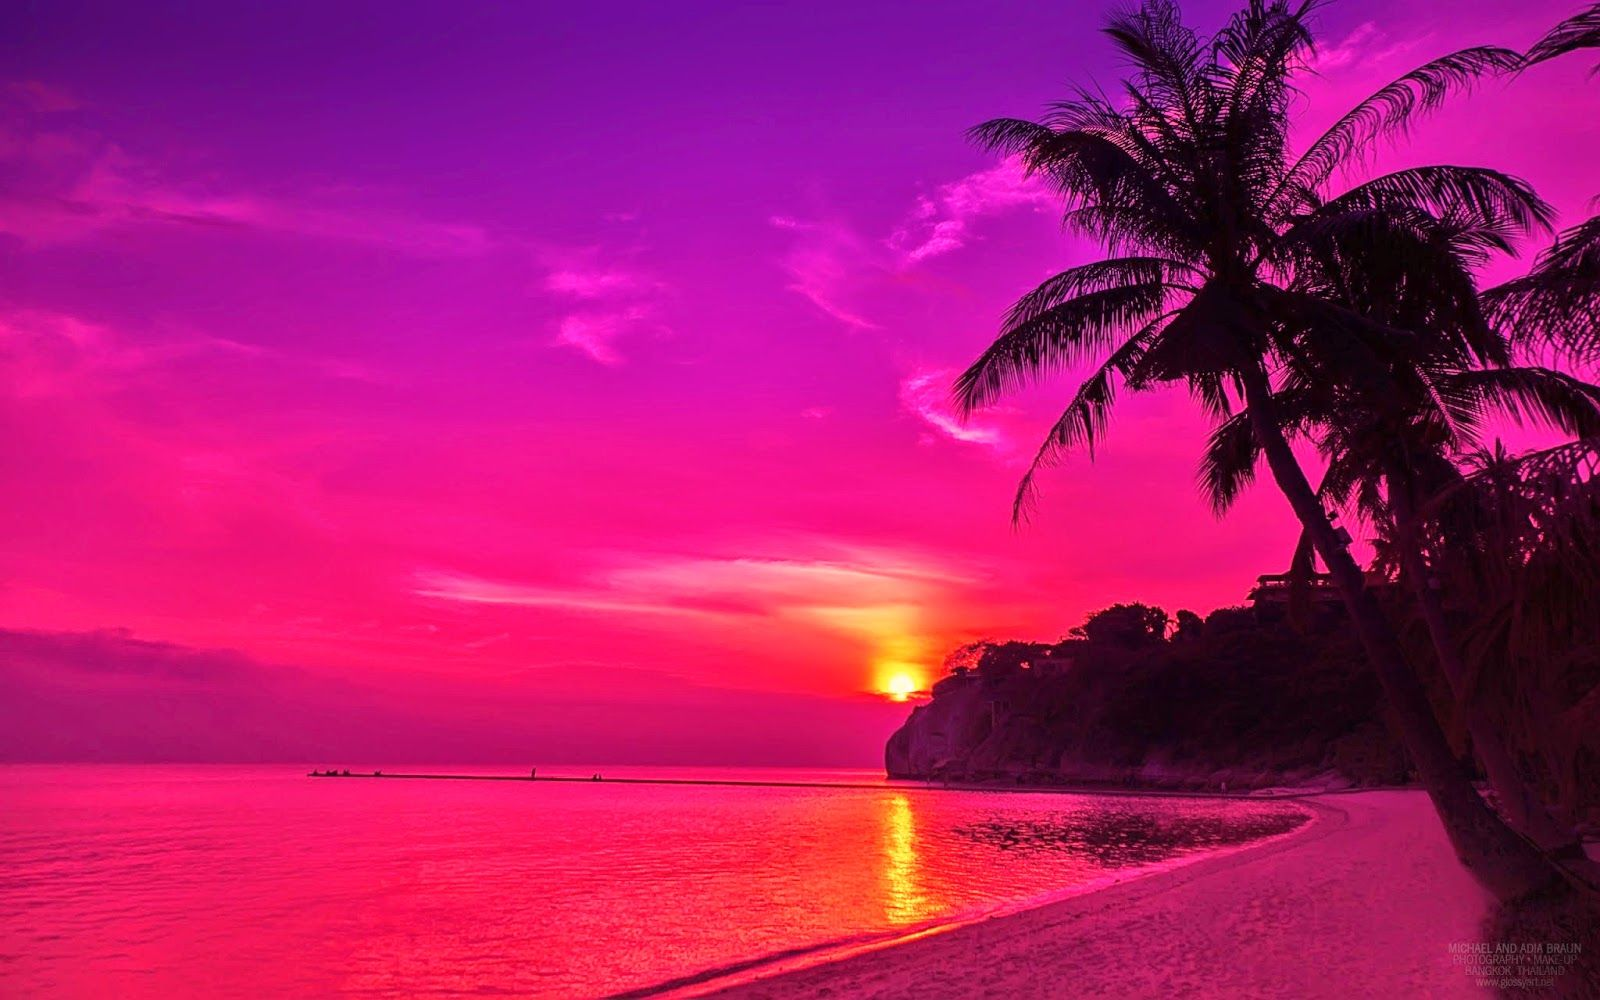 Image for pink beach sunset wallpaper iphone wallpaper - Sunset iphone background ...